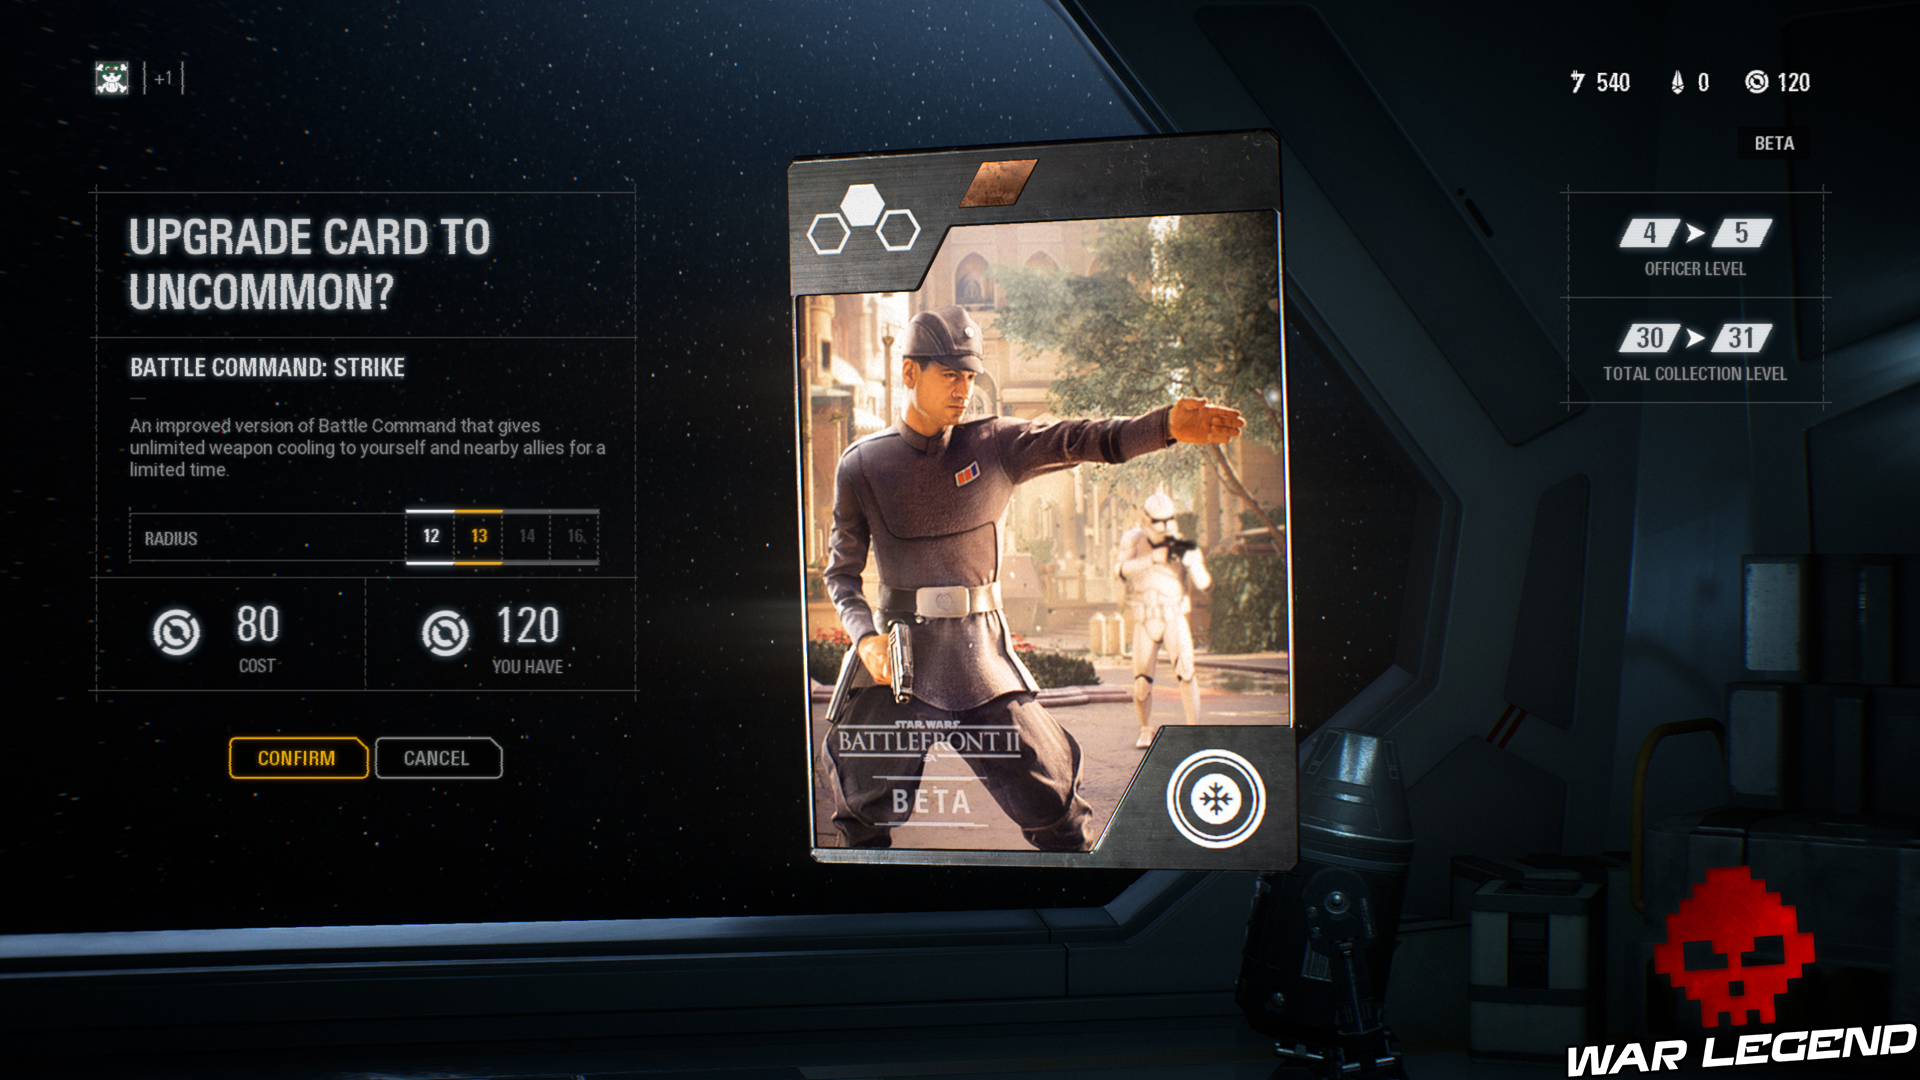 Guide Star Wars: Battlefront II